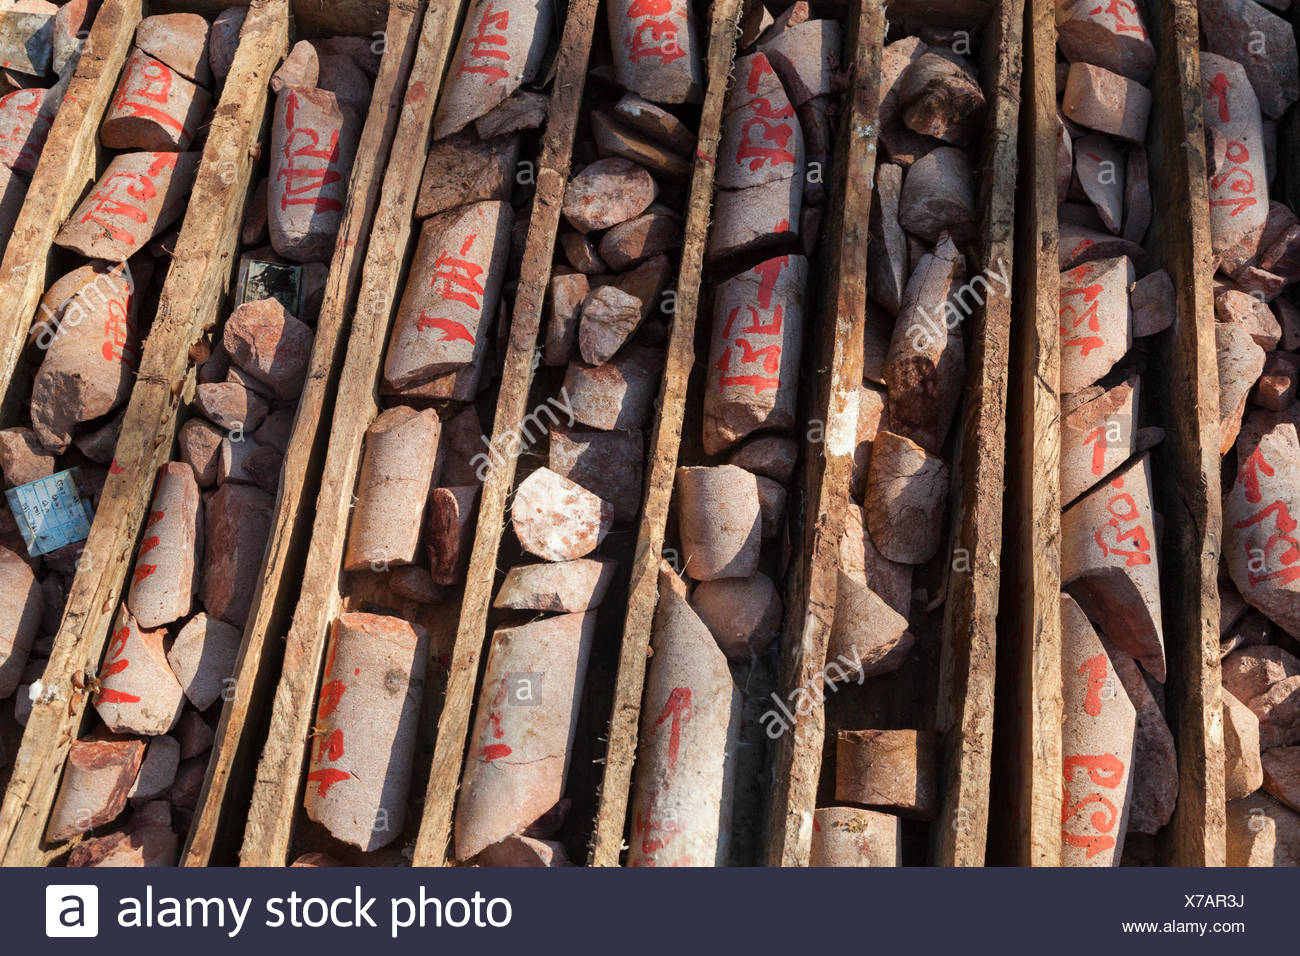 Labeled bedrock core samples collected by a drill rig from the bed of the Nam Ou River at the planned site for Dam #7 in Phou Den Din National Protected Area, Laos. - Stock Image